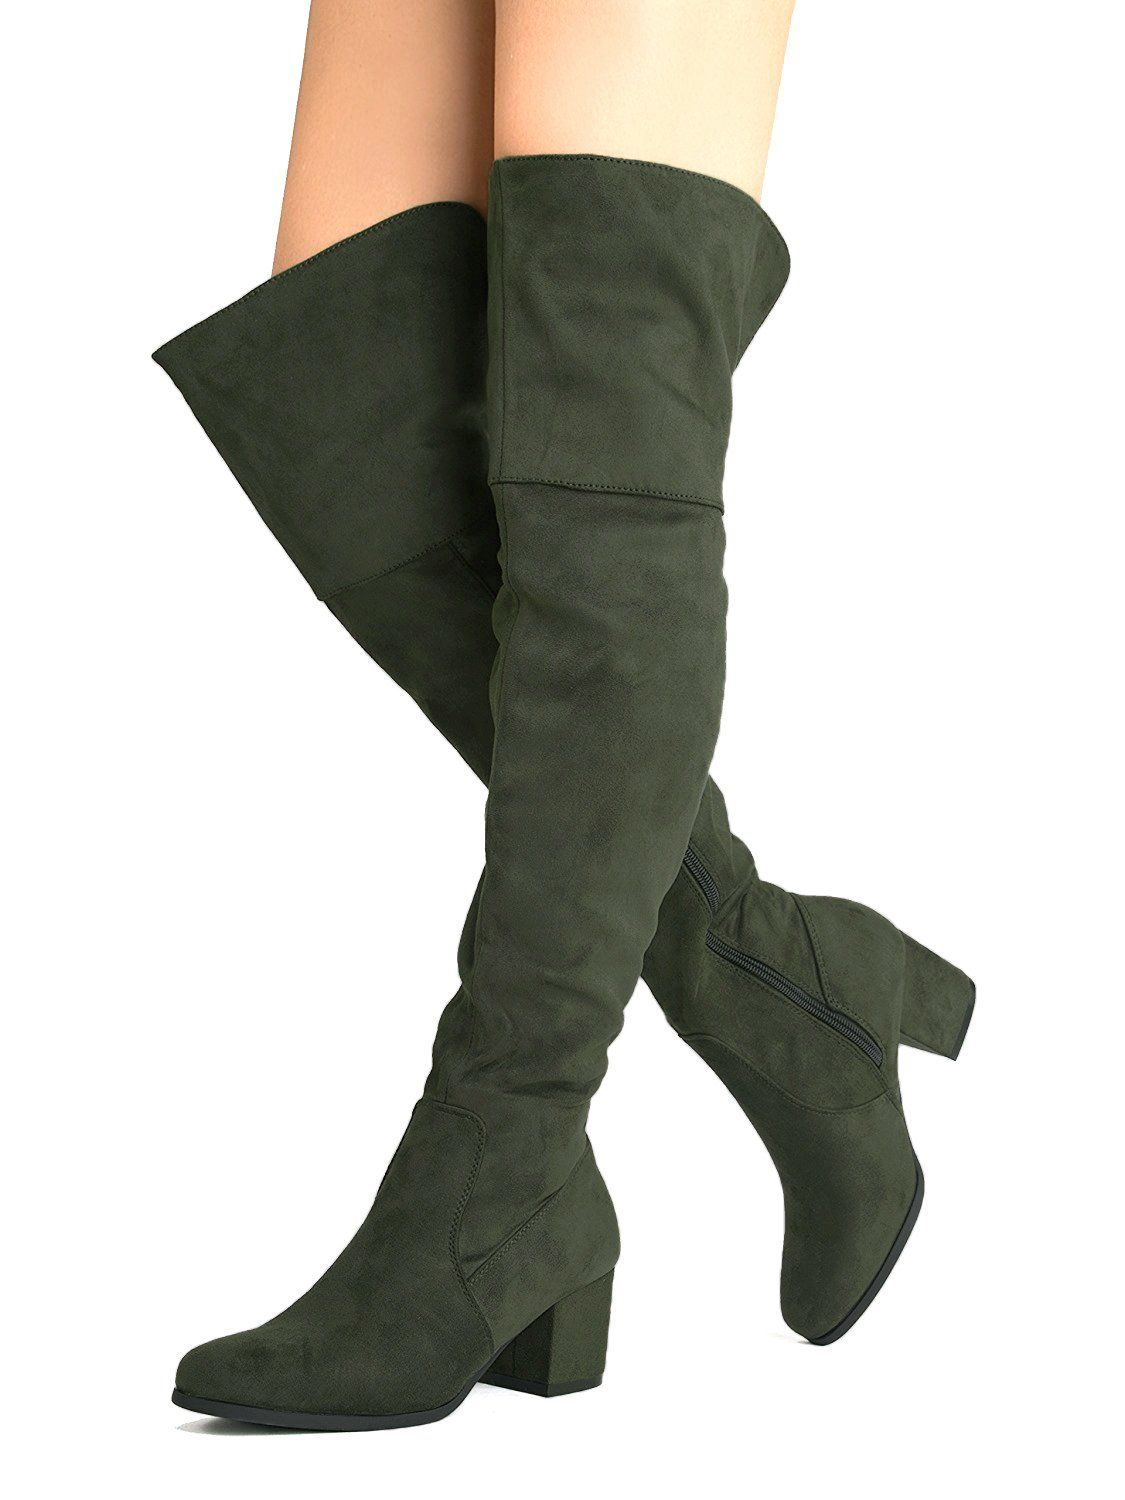 6f1a86f00178 OLIVIA K Womens Vegan Suede Thigh High Easy Block Low Heel Cut Out Back  Over The Knee Boots     See this great product. (This is an affiliate link)    ...